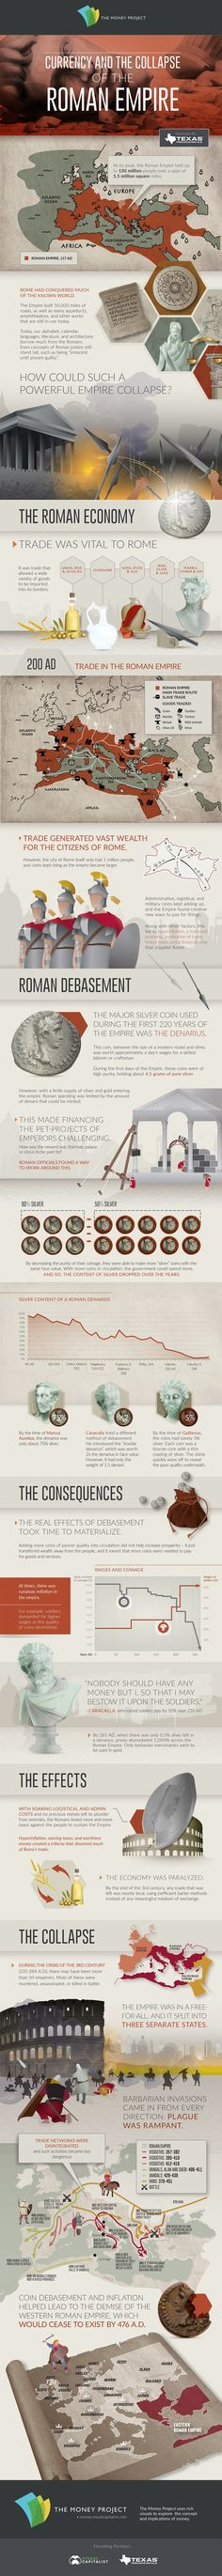 Currency and the Collapse of the Roman Empire. The Money Project is an ongoing collaboration between Visual Capitalist and Texas Precious Metals that seeks to use intuitive visualizations to explore the origins, nature, and use of money. At its peak, the Roman Empire held up to 130 million people over a span of 1.5 million square miles. Rome had conquered much of the known world. The Empire built 50,000 miles of roads, as well as many aqueducts, amphitheatres, and other works that are still…